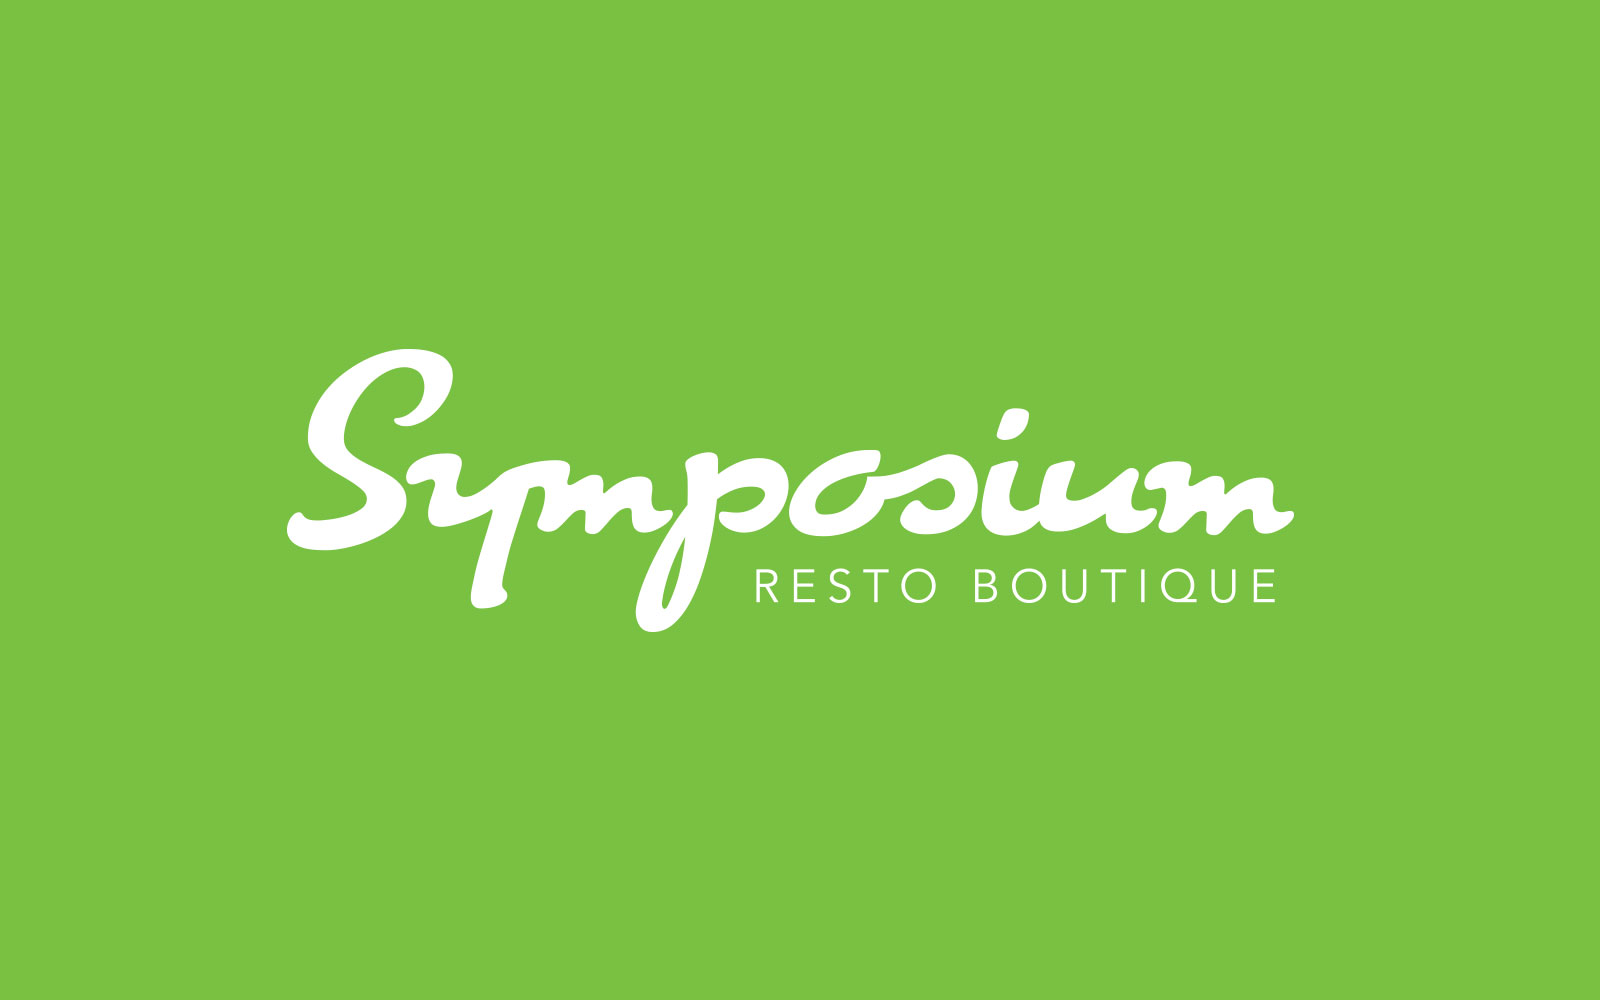 Symposium resto boutique